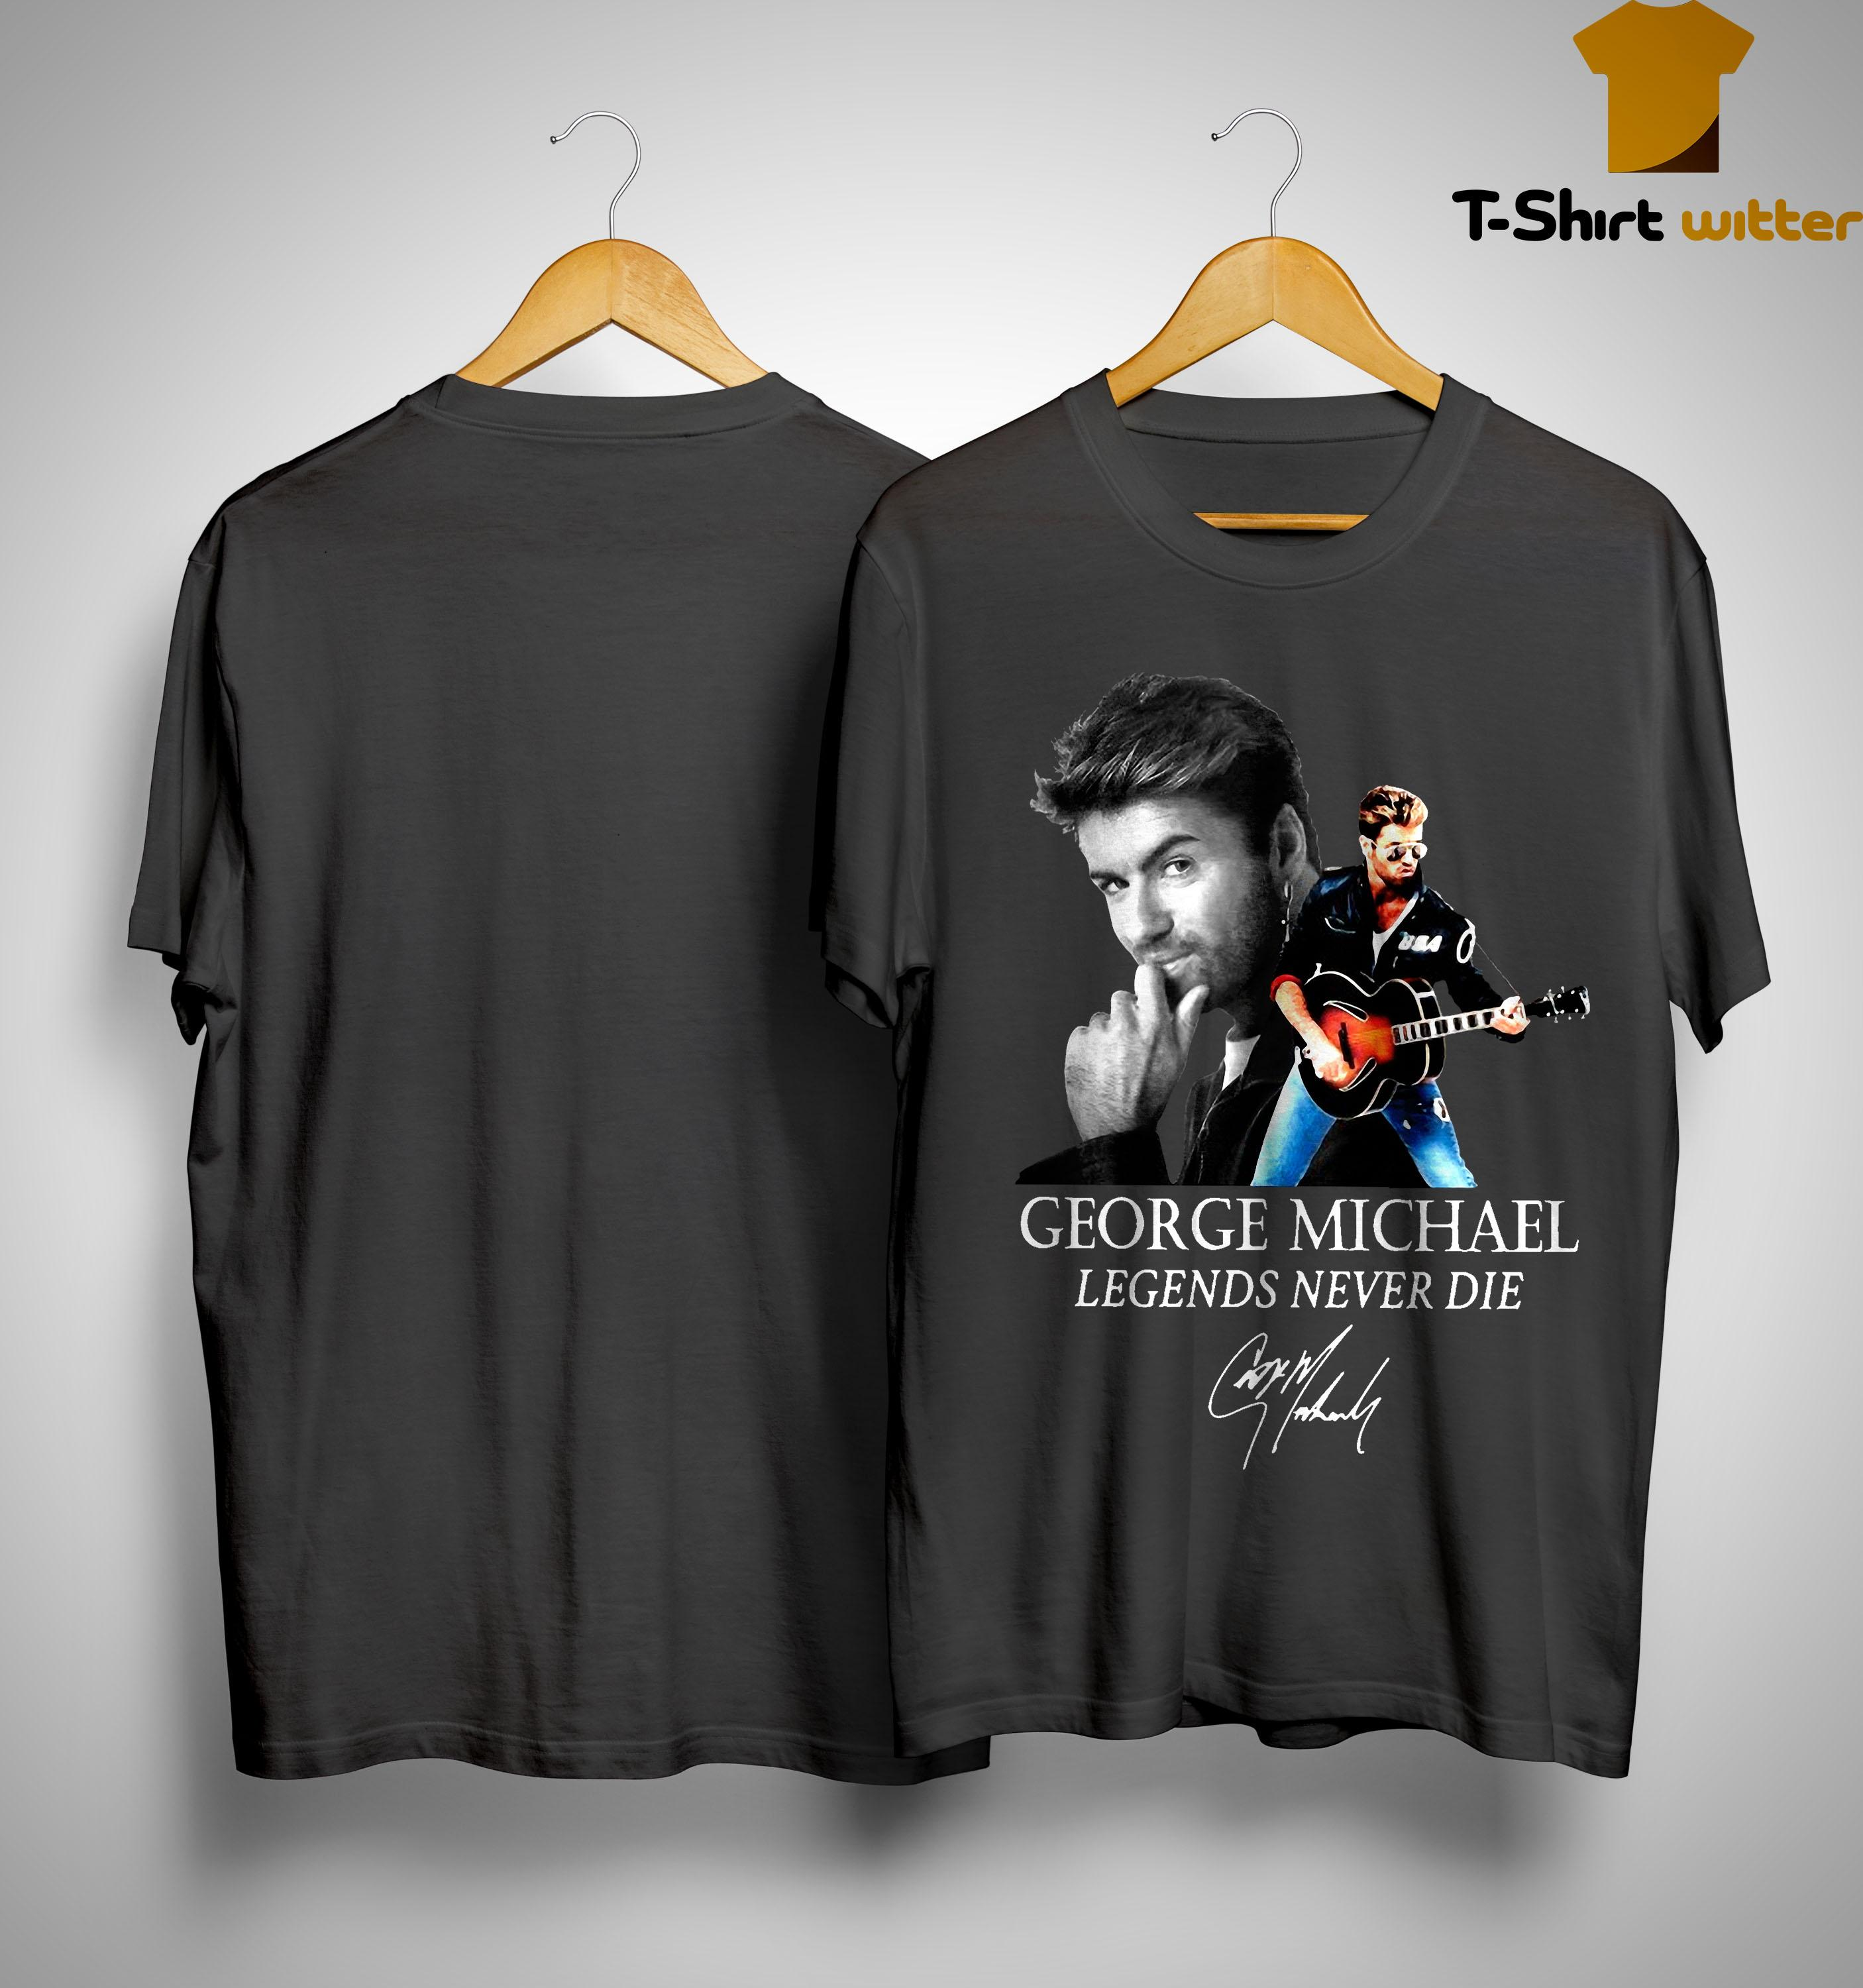 George Michael Legends Never Die Signature Shirt